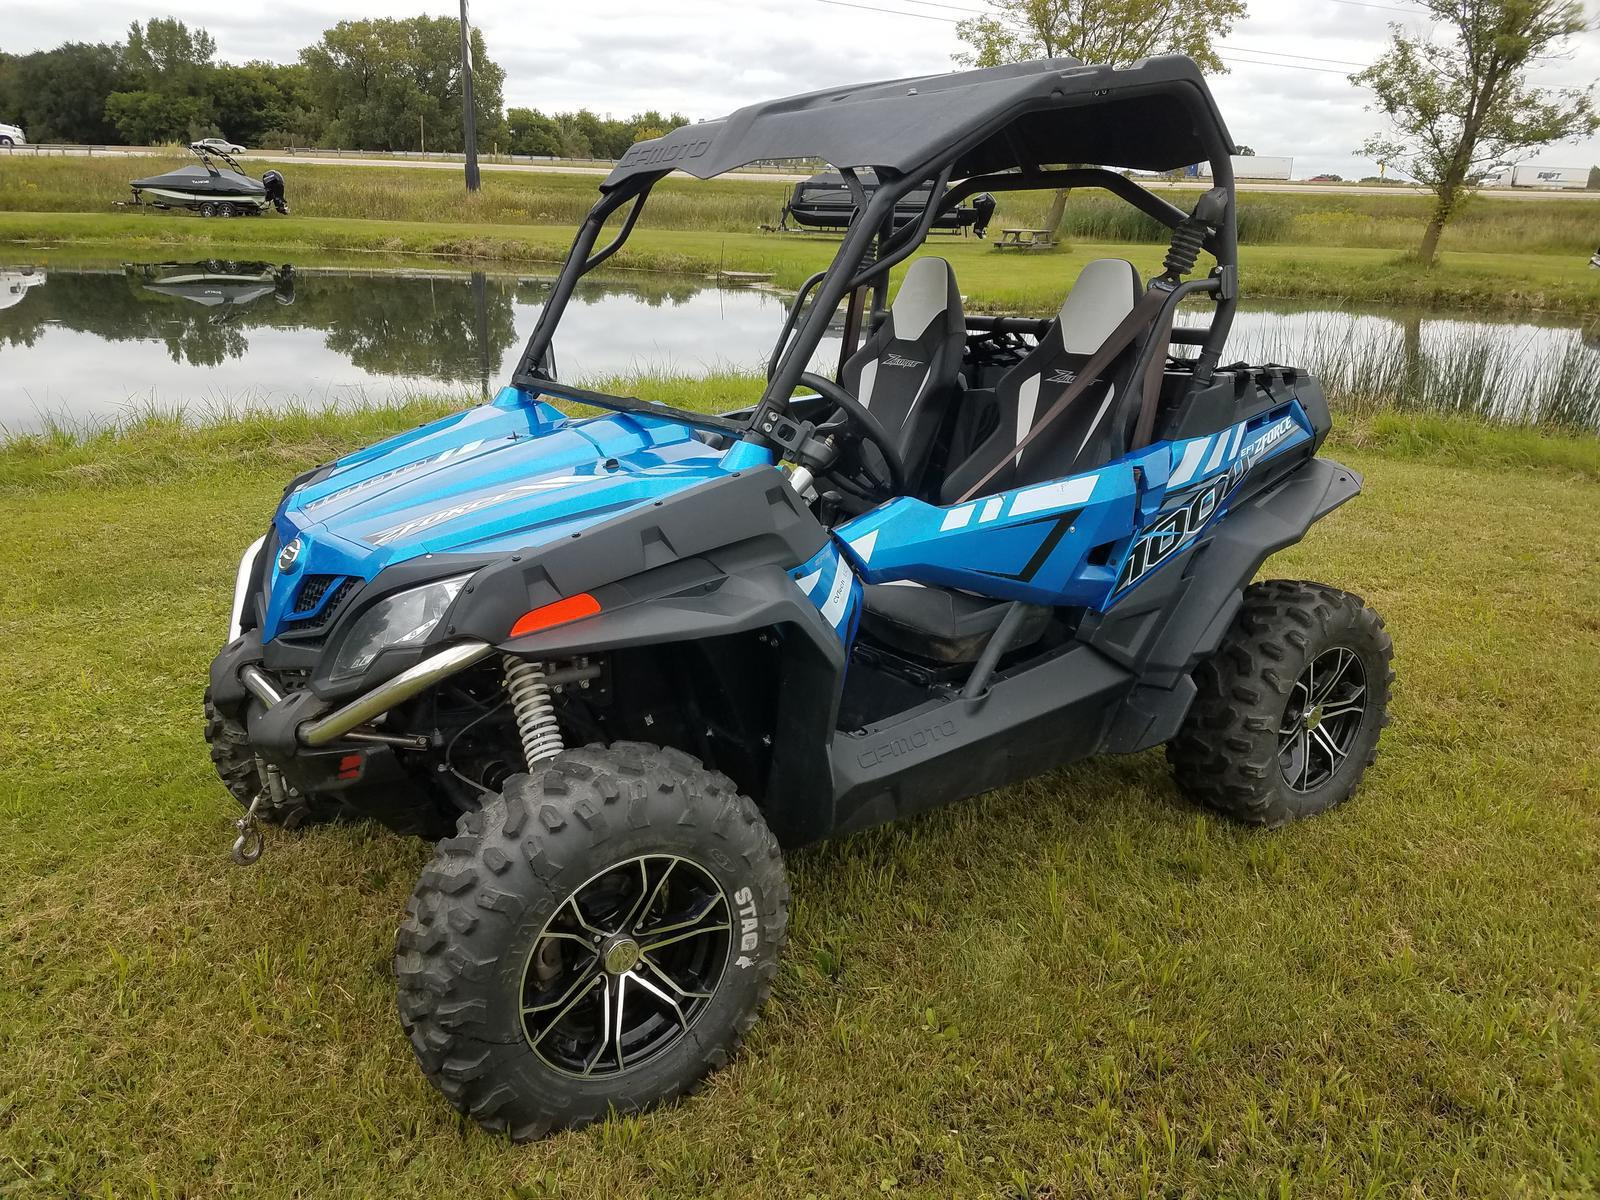 Inventory Mad City Power Sports Deforest, WI (888) MAD-CITY